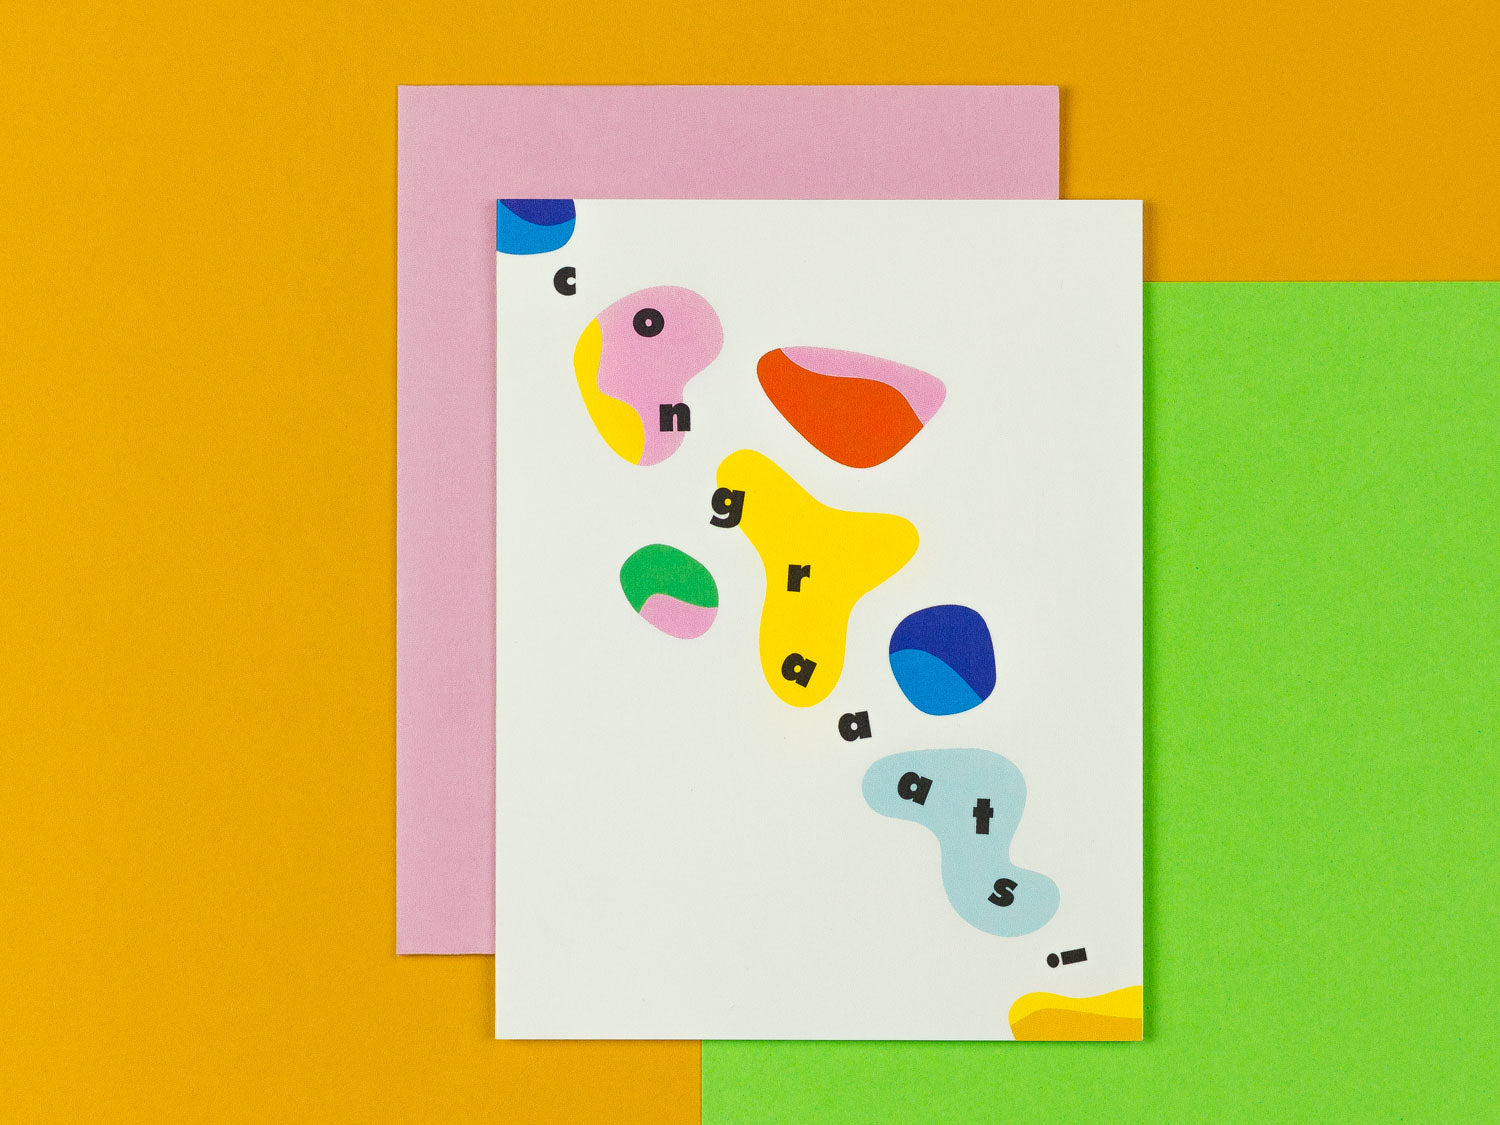 Congrats card with colorful abstract shapes by My Darlin' @mydarlin_bk